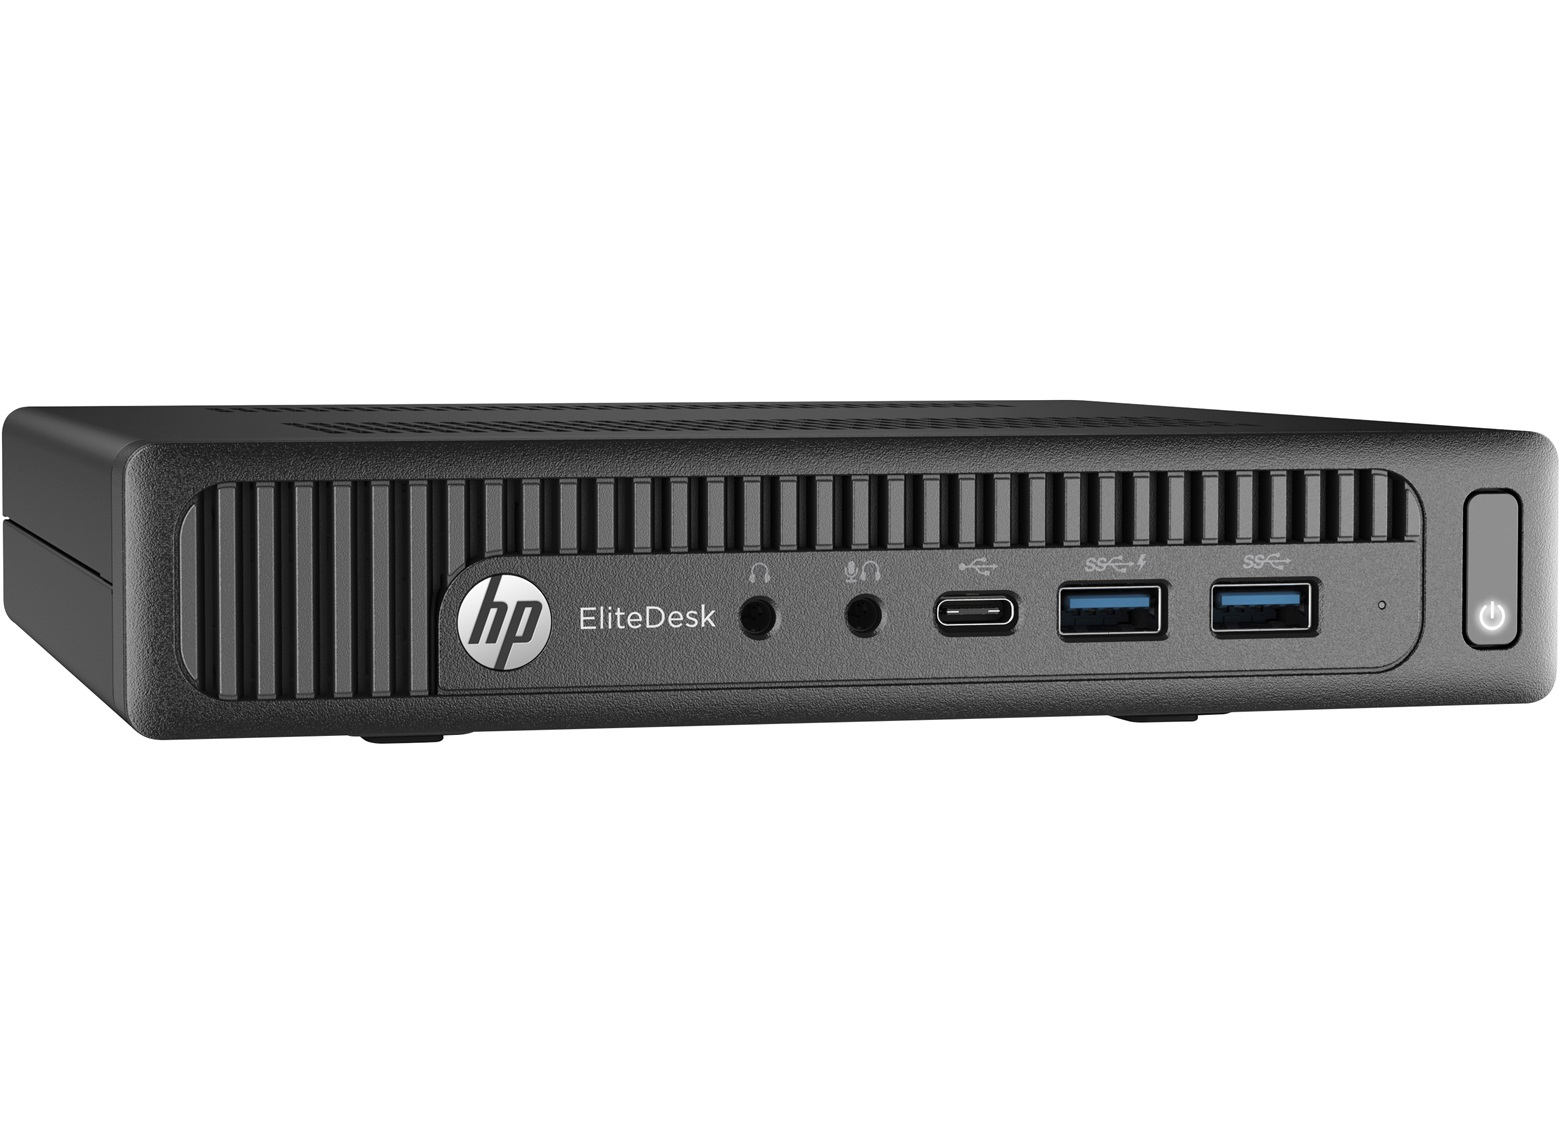 HP EliteDesk 800 G2 3.2GHz i3-6100T 1L sized PC Black